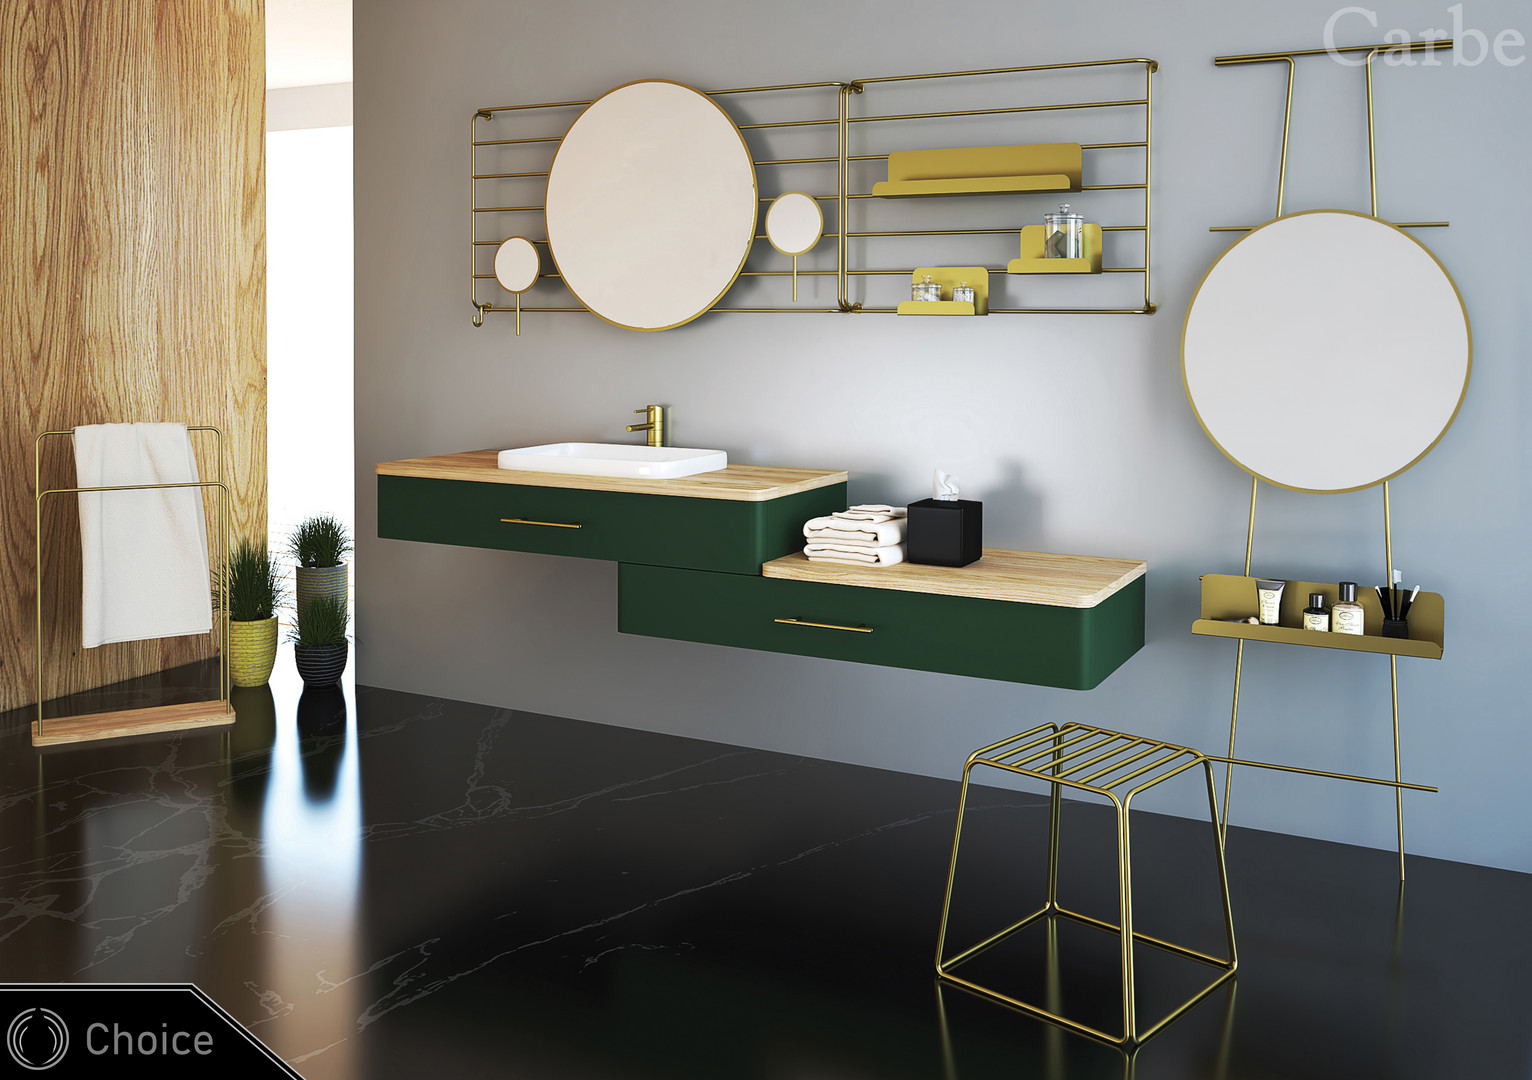 Choice - Green Supermatt, Natural Ash Wood, Dolmite Washbasin, Soft Closing